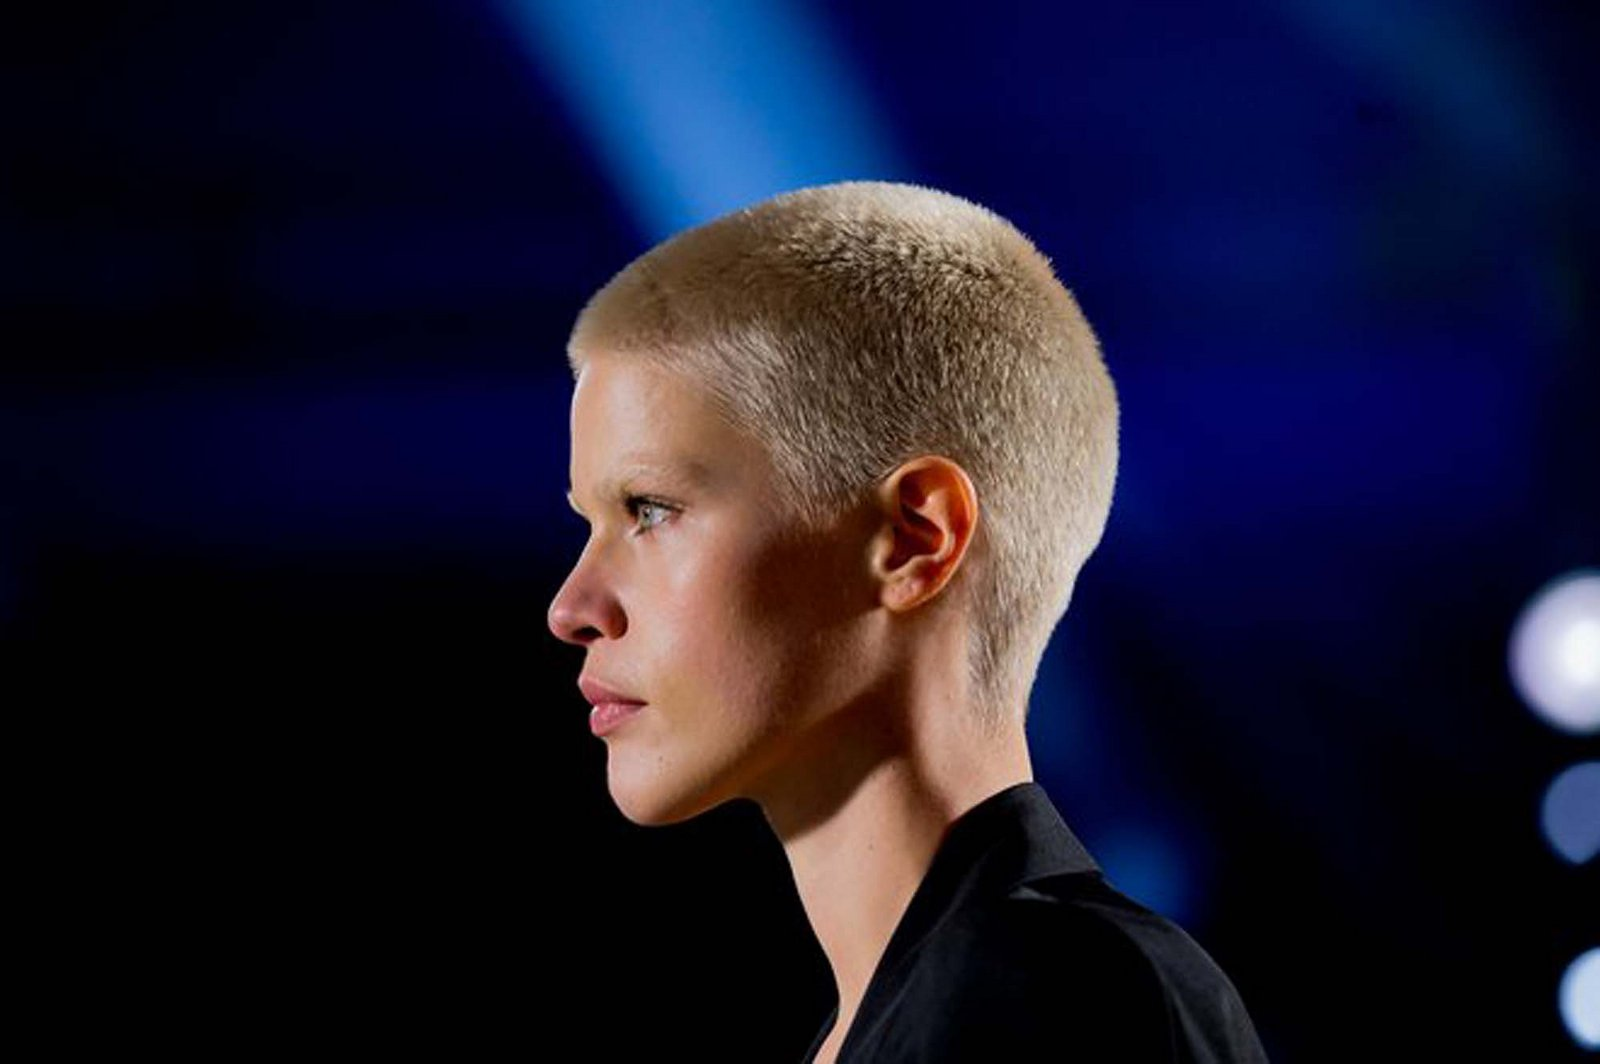 Kris Gottschalk buzz cut hairstyles